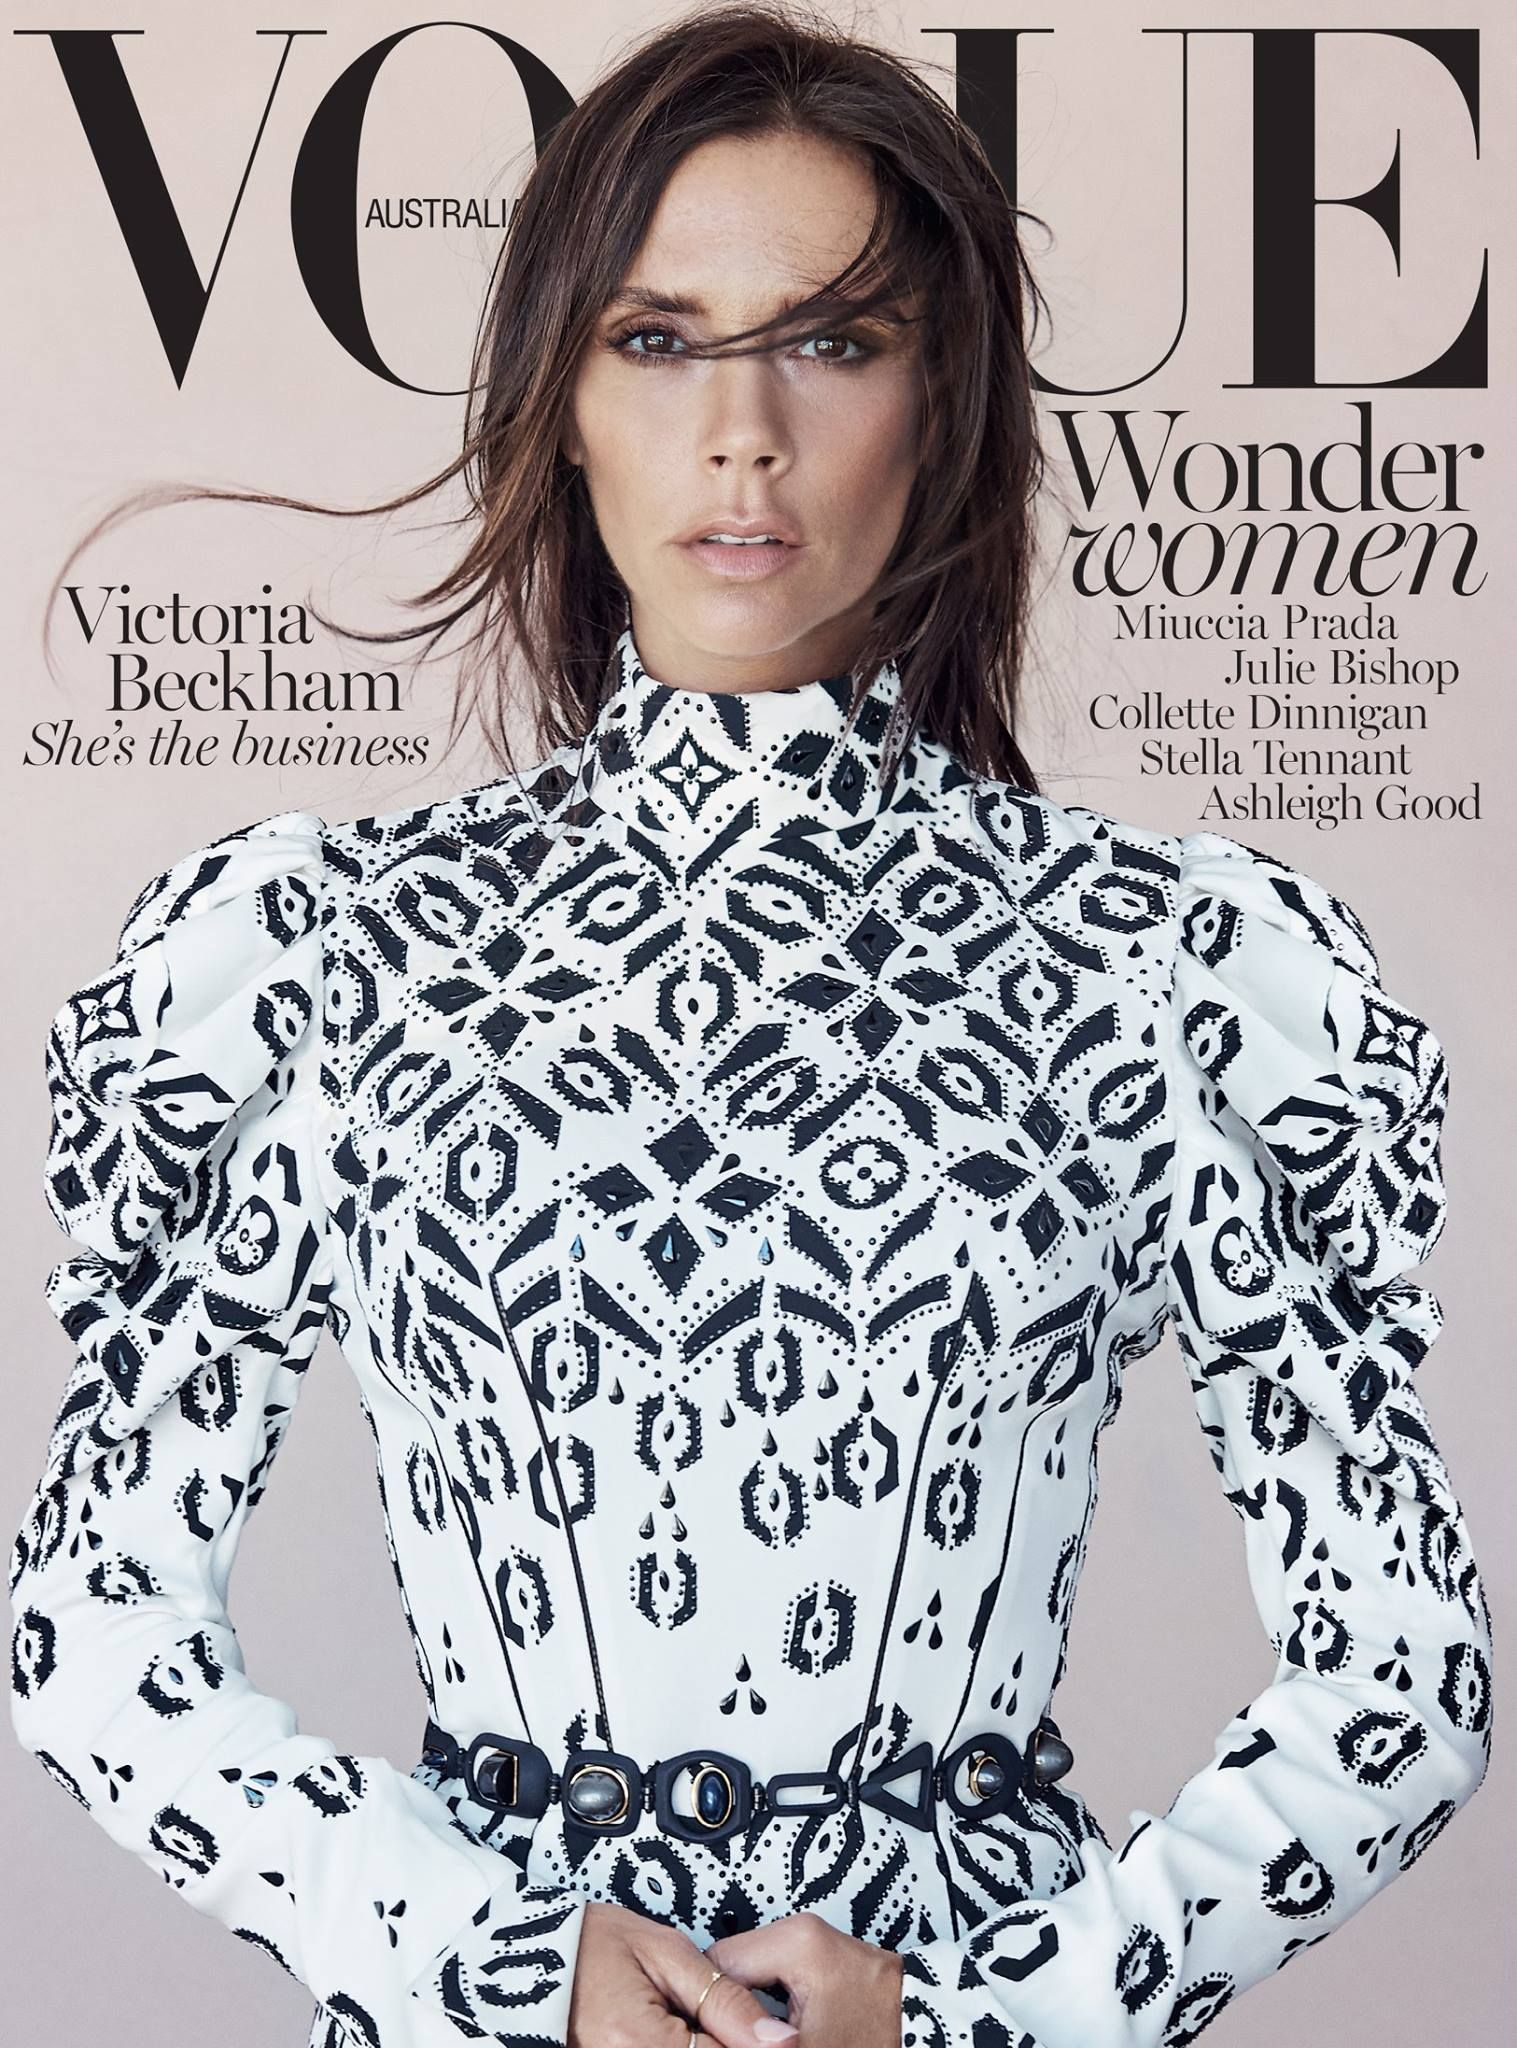 Victoria Beckham by Patrick Demarchelier Vogue Australia August 2015